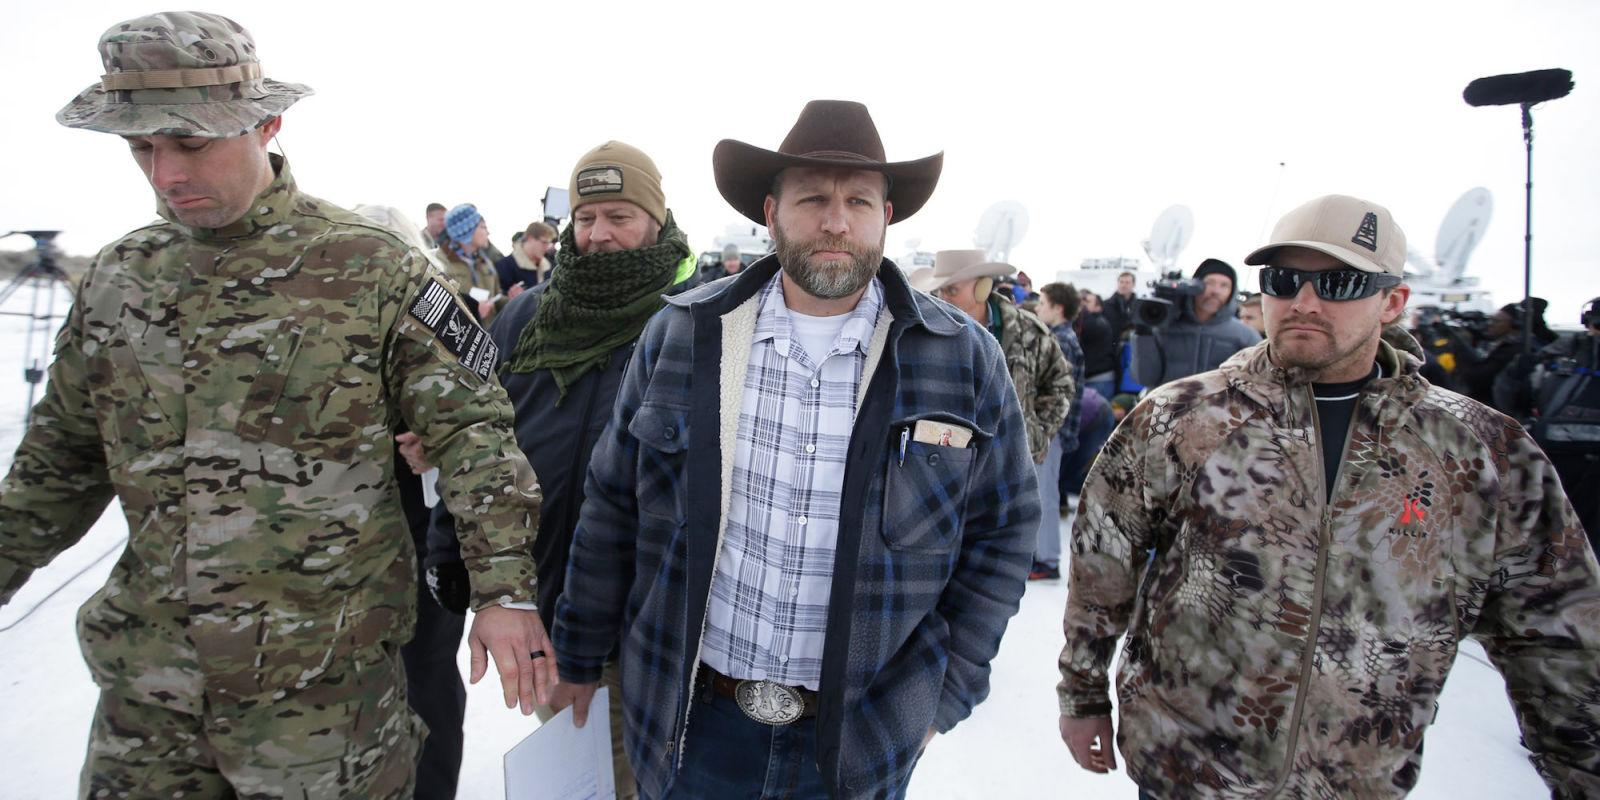 Is the Oregon Standoff Over Yet?